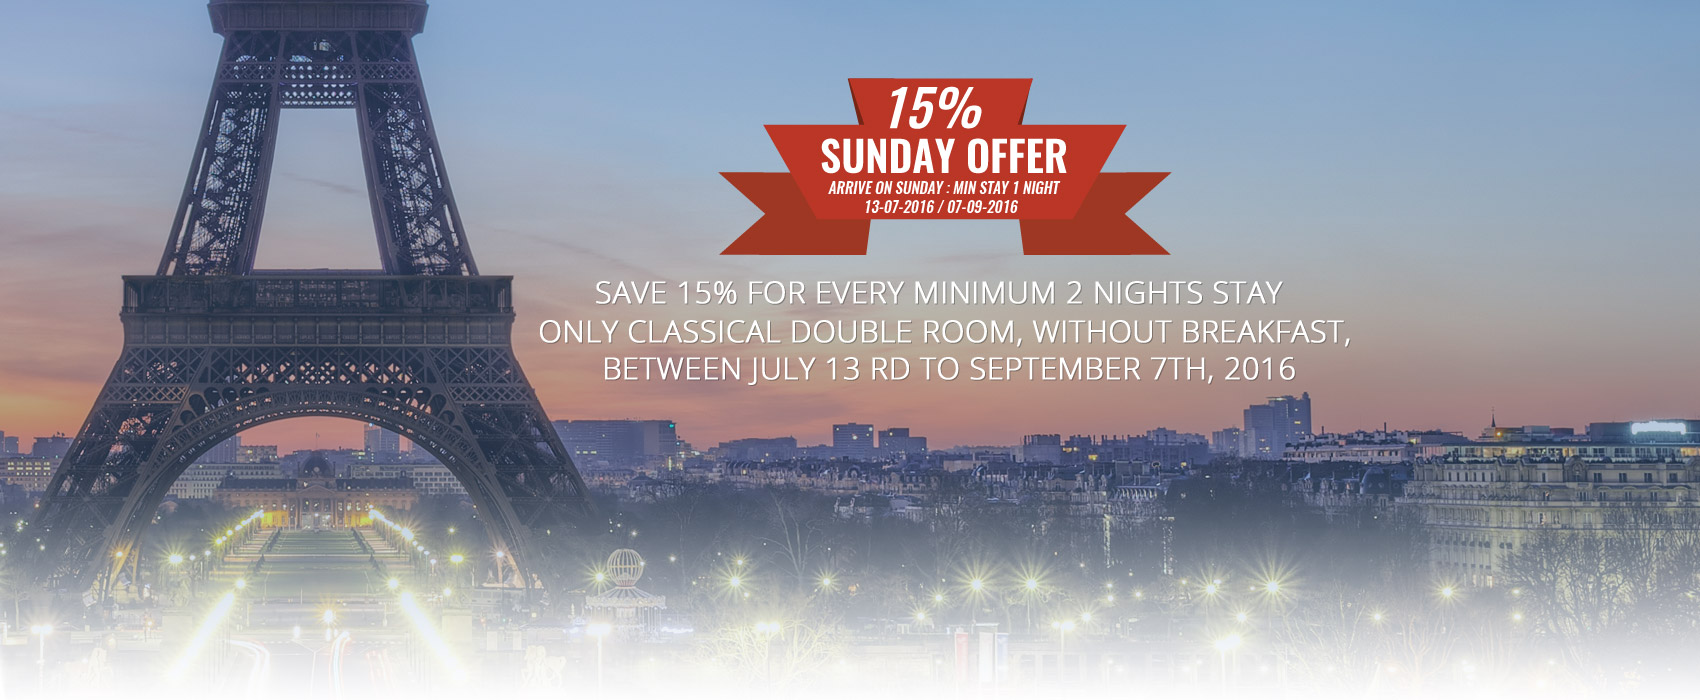 Save 15% for Every Minimum 2 Nights Stay Only classical double room, without breakfast Between JULY  12 rd to  SEPTEMBER 4th, 2016